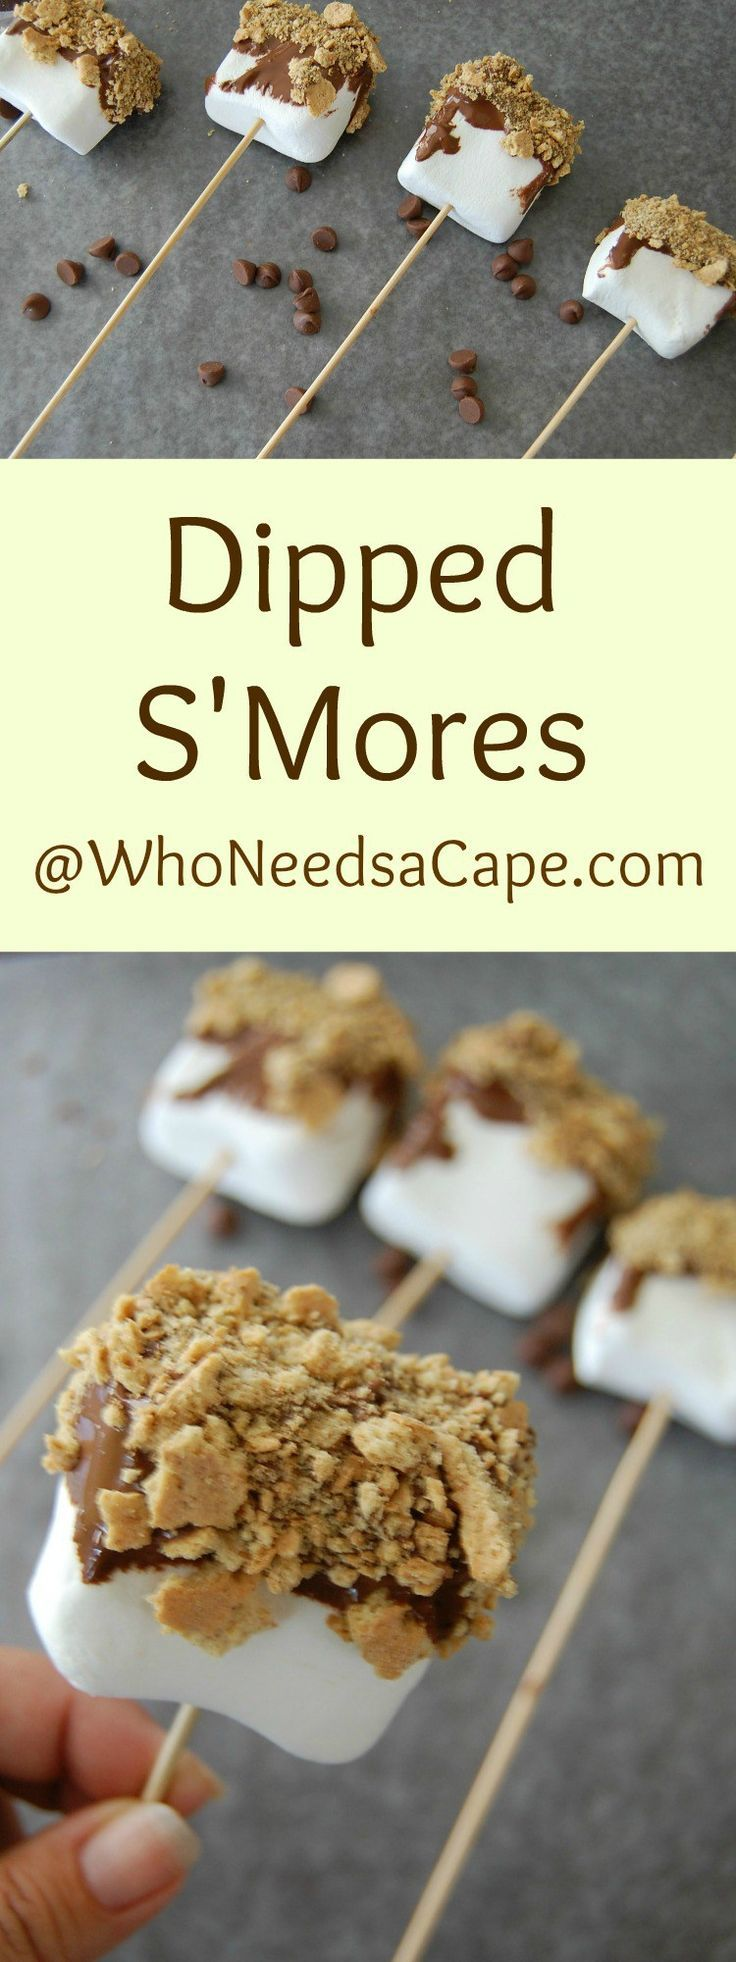 Uncategorized How To Make A Movie For Kids dipped smores recipe family movies dips and movie are a super fun summer treat easy to make your